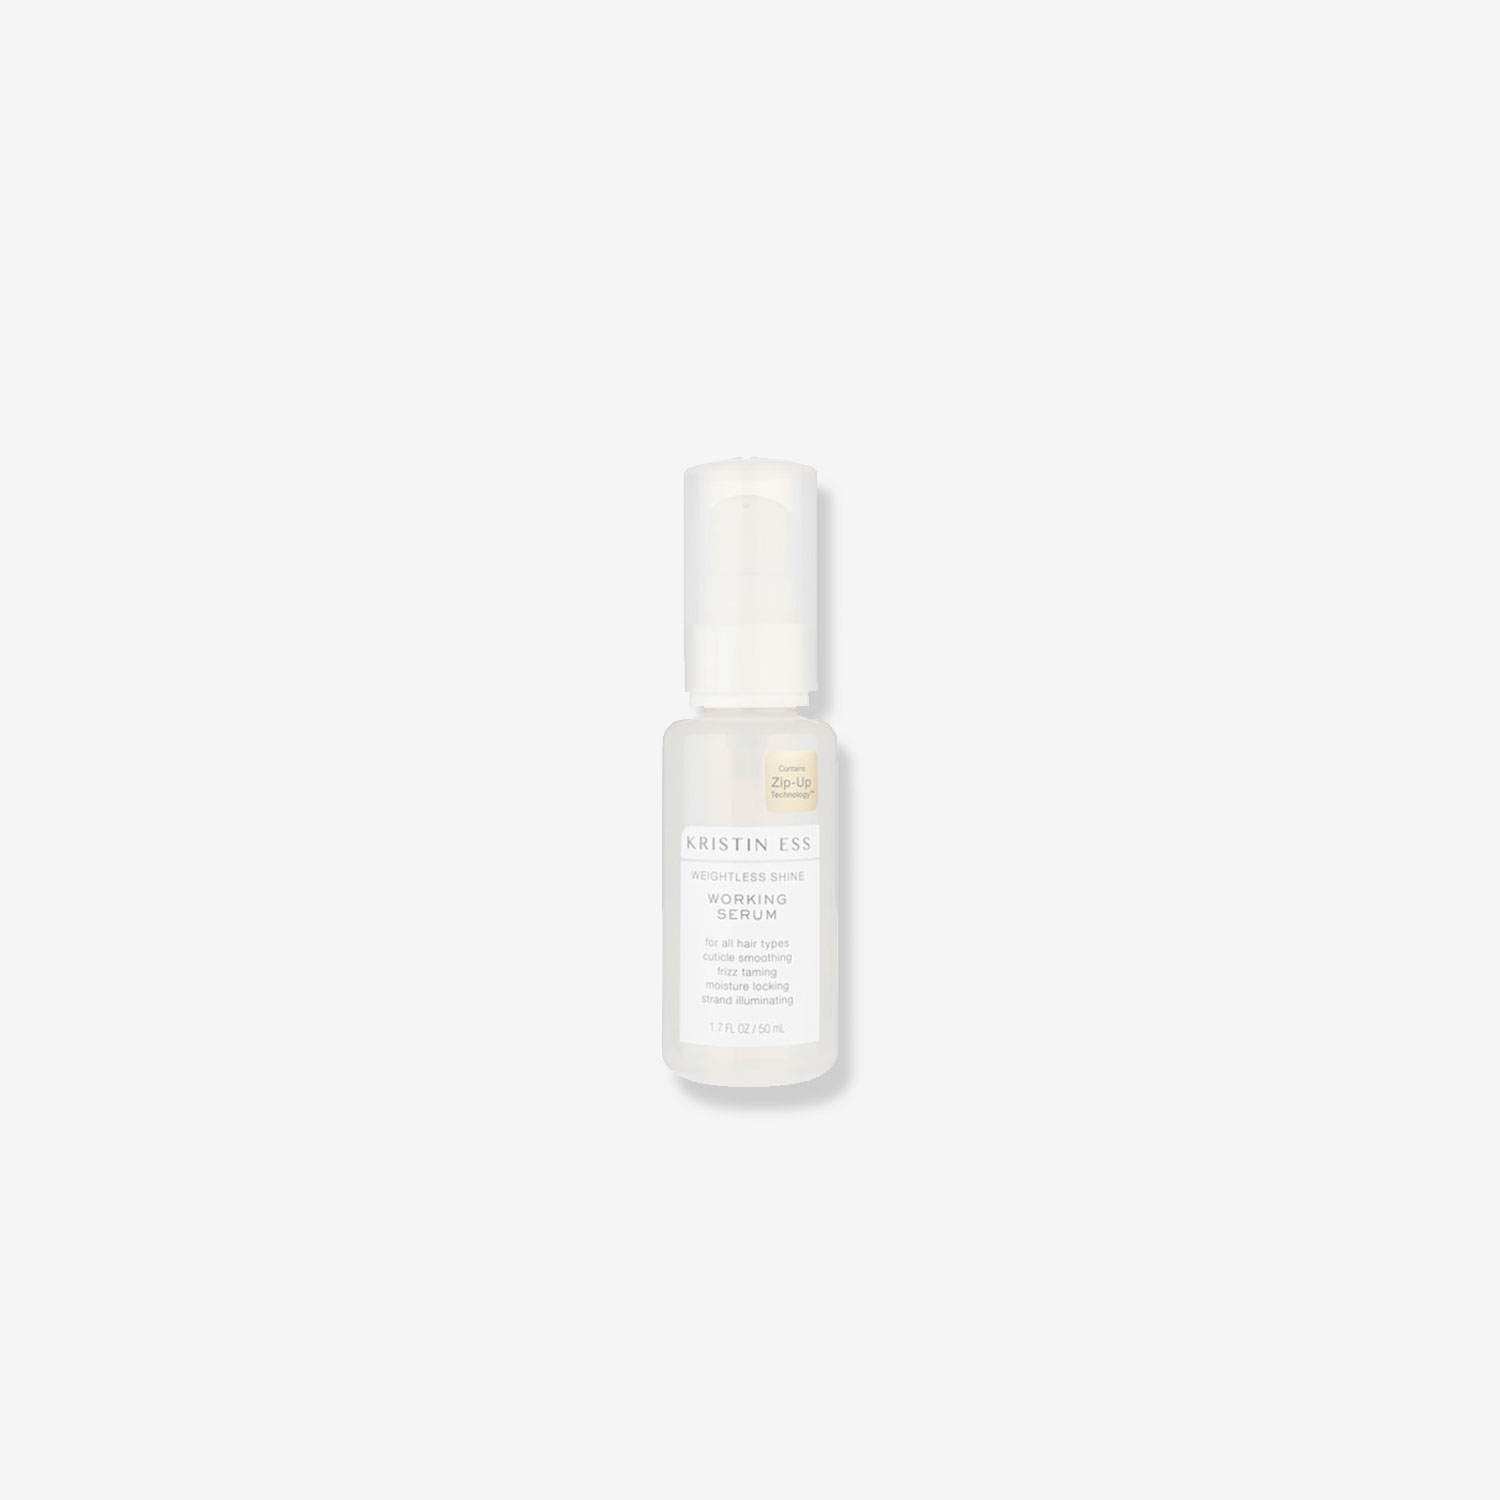 Working Serum